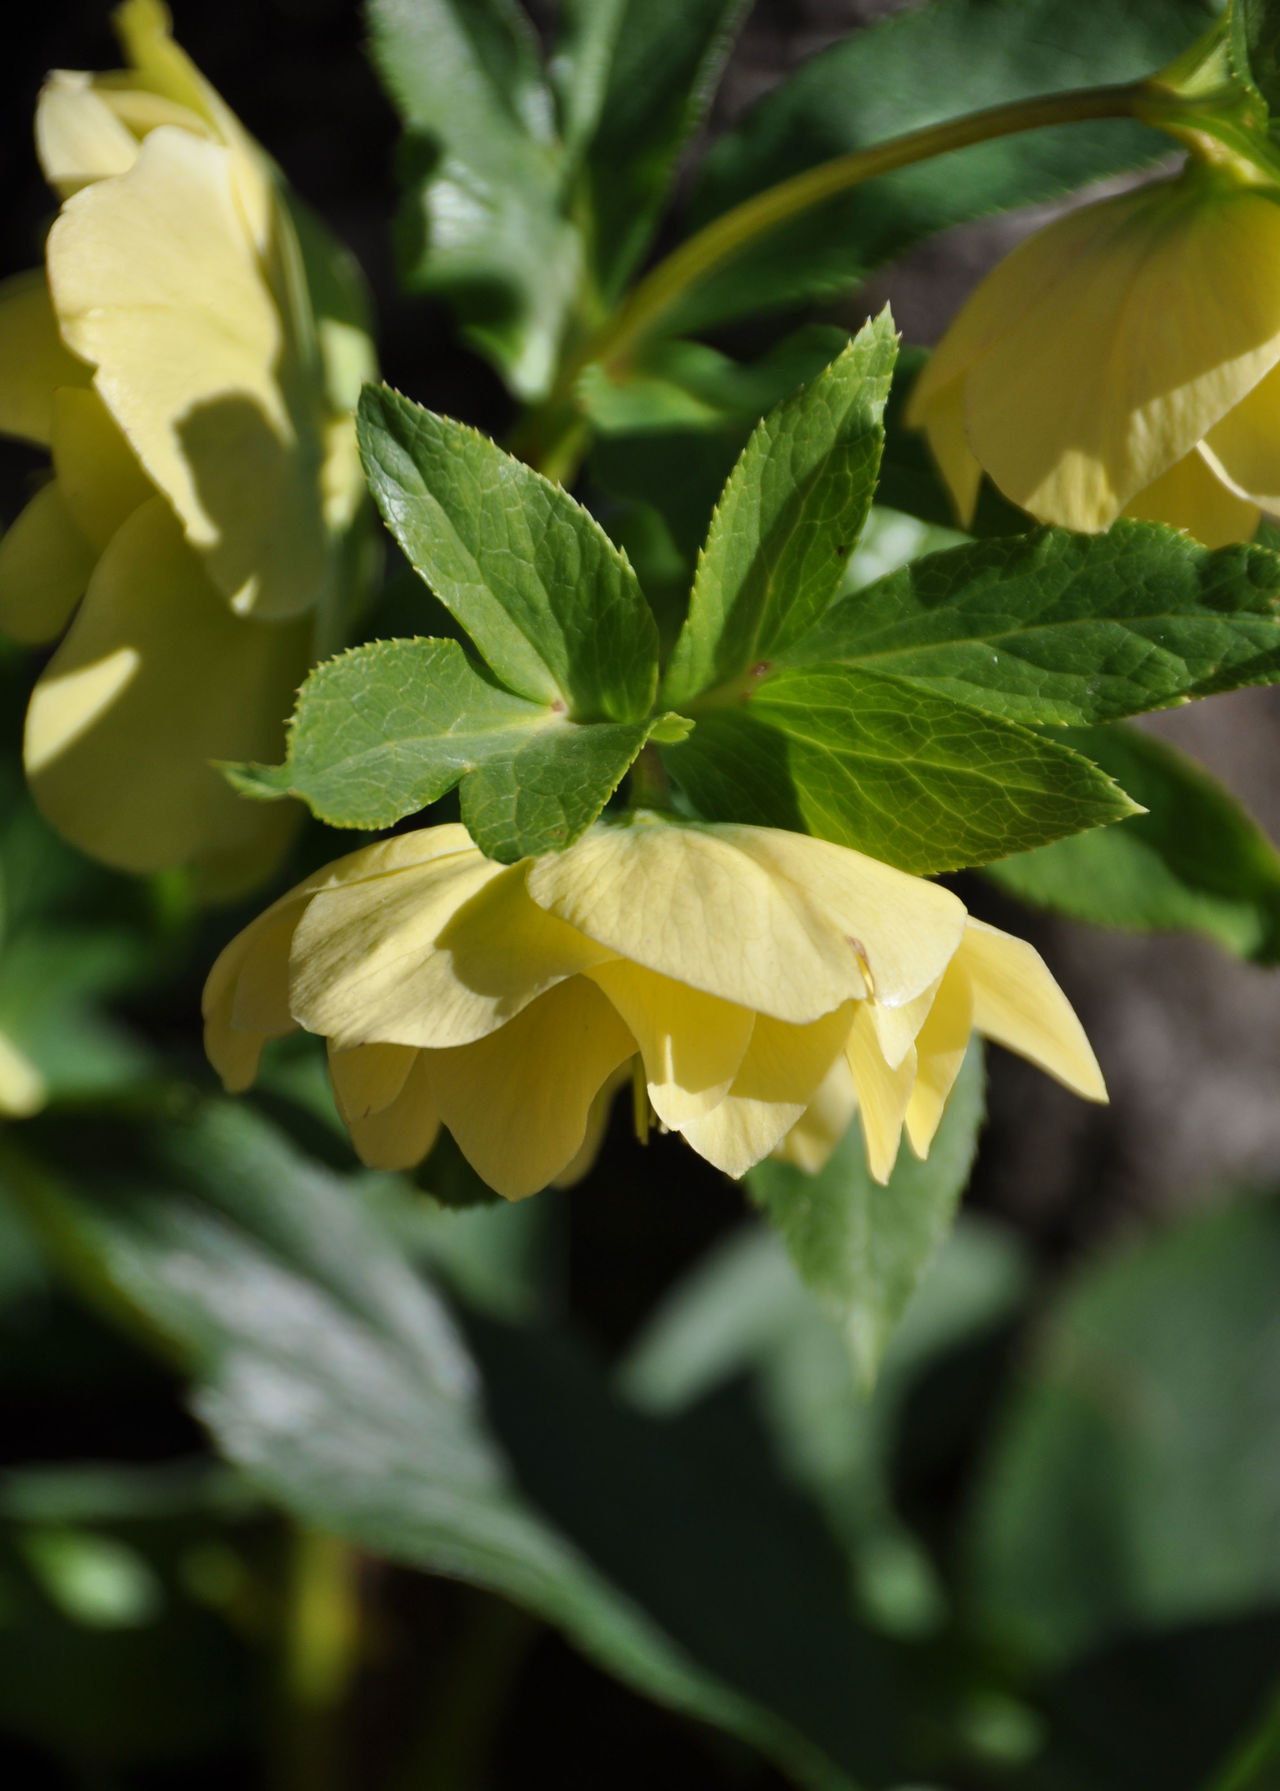 Christmas Rose Christrose Close-up Day Freshness Gelbe Christrose Green Color Growth Helleborus Niger January Leaf Nature No People Outdoors Plant Winter Flower  Yellow Christmas Rose